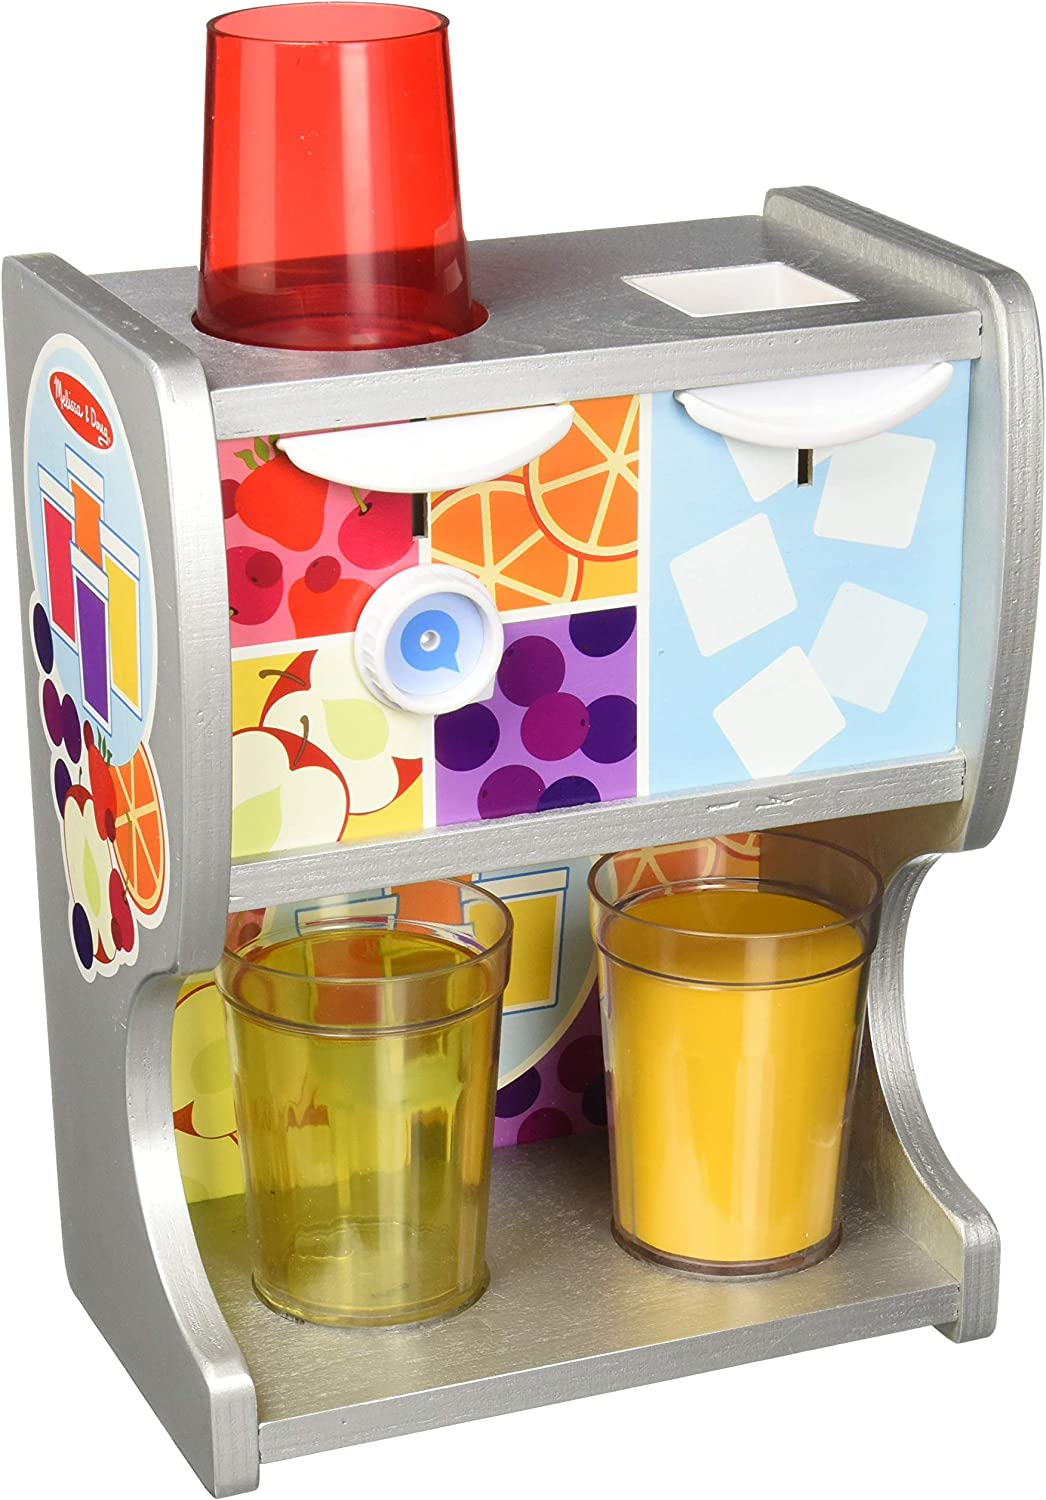 Melissa & Doug 19300 Wooden Drink Cups, Juice Inserts, Ice Cubes (10 Pcs) Thirst Quencher Dispenser,